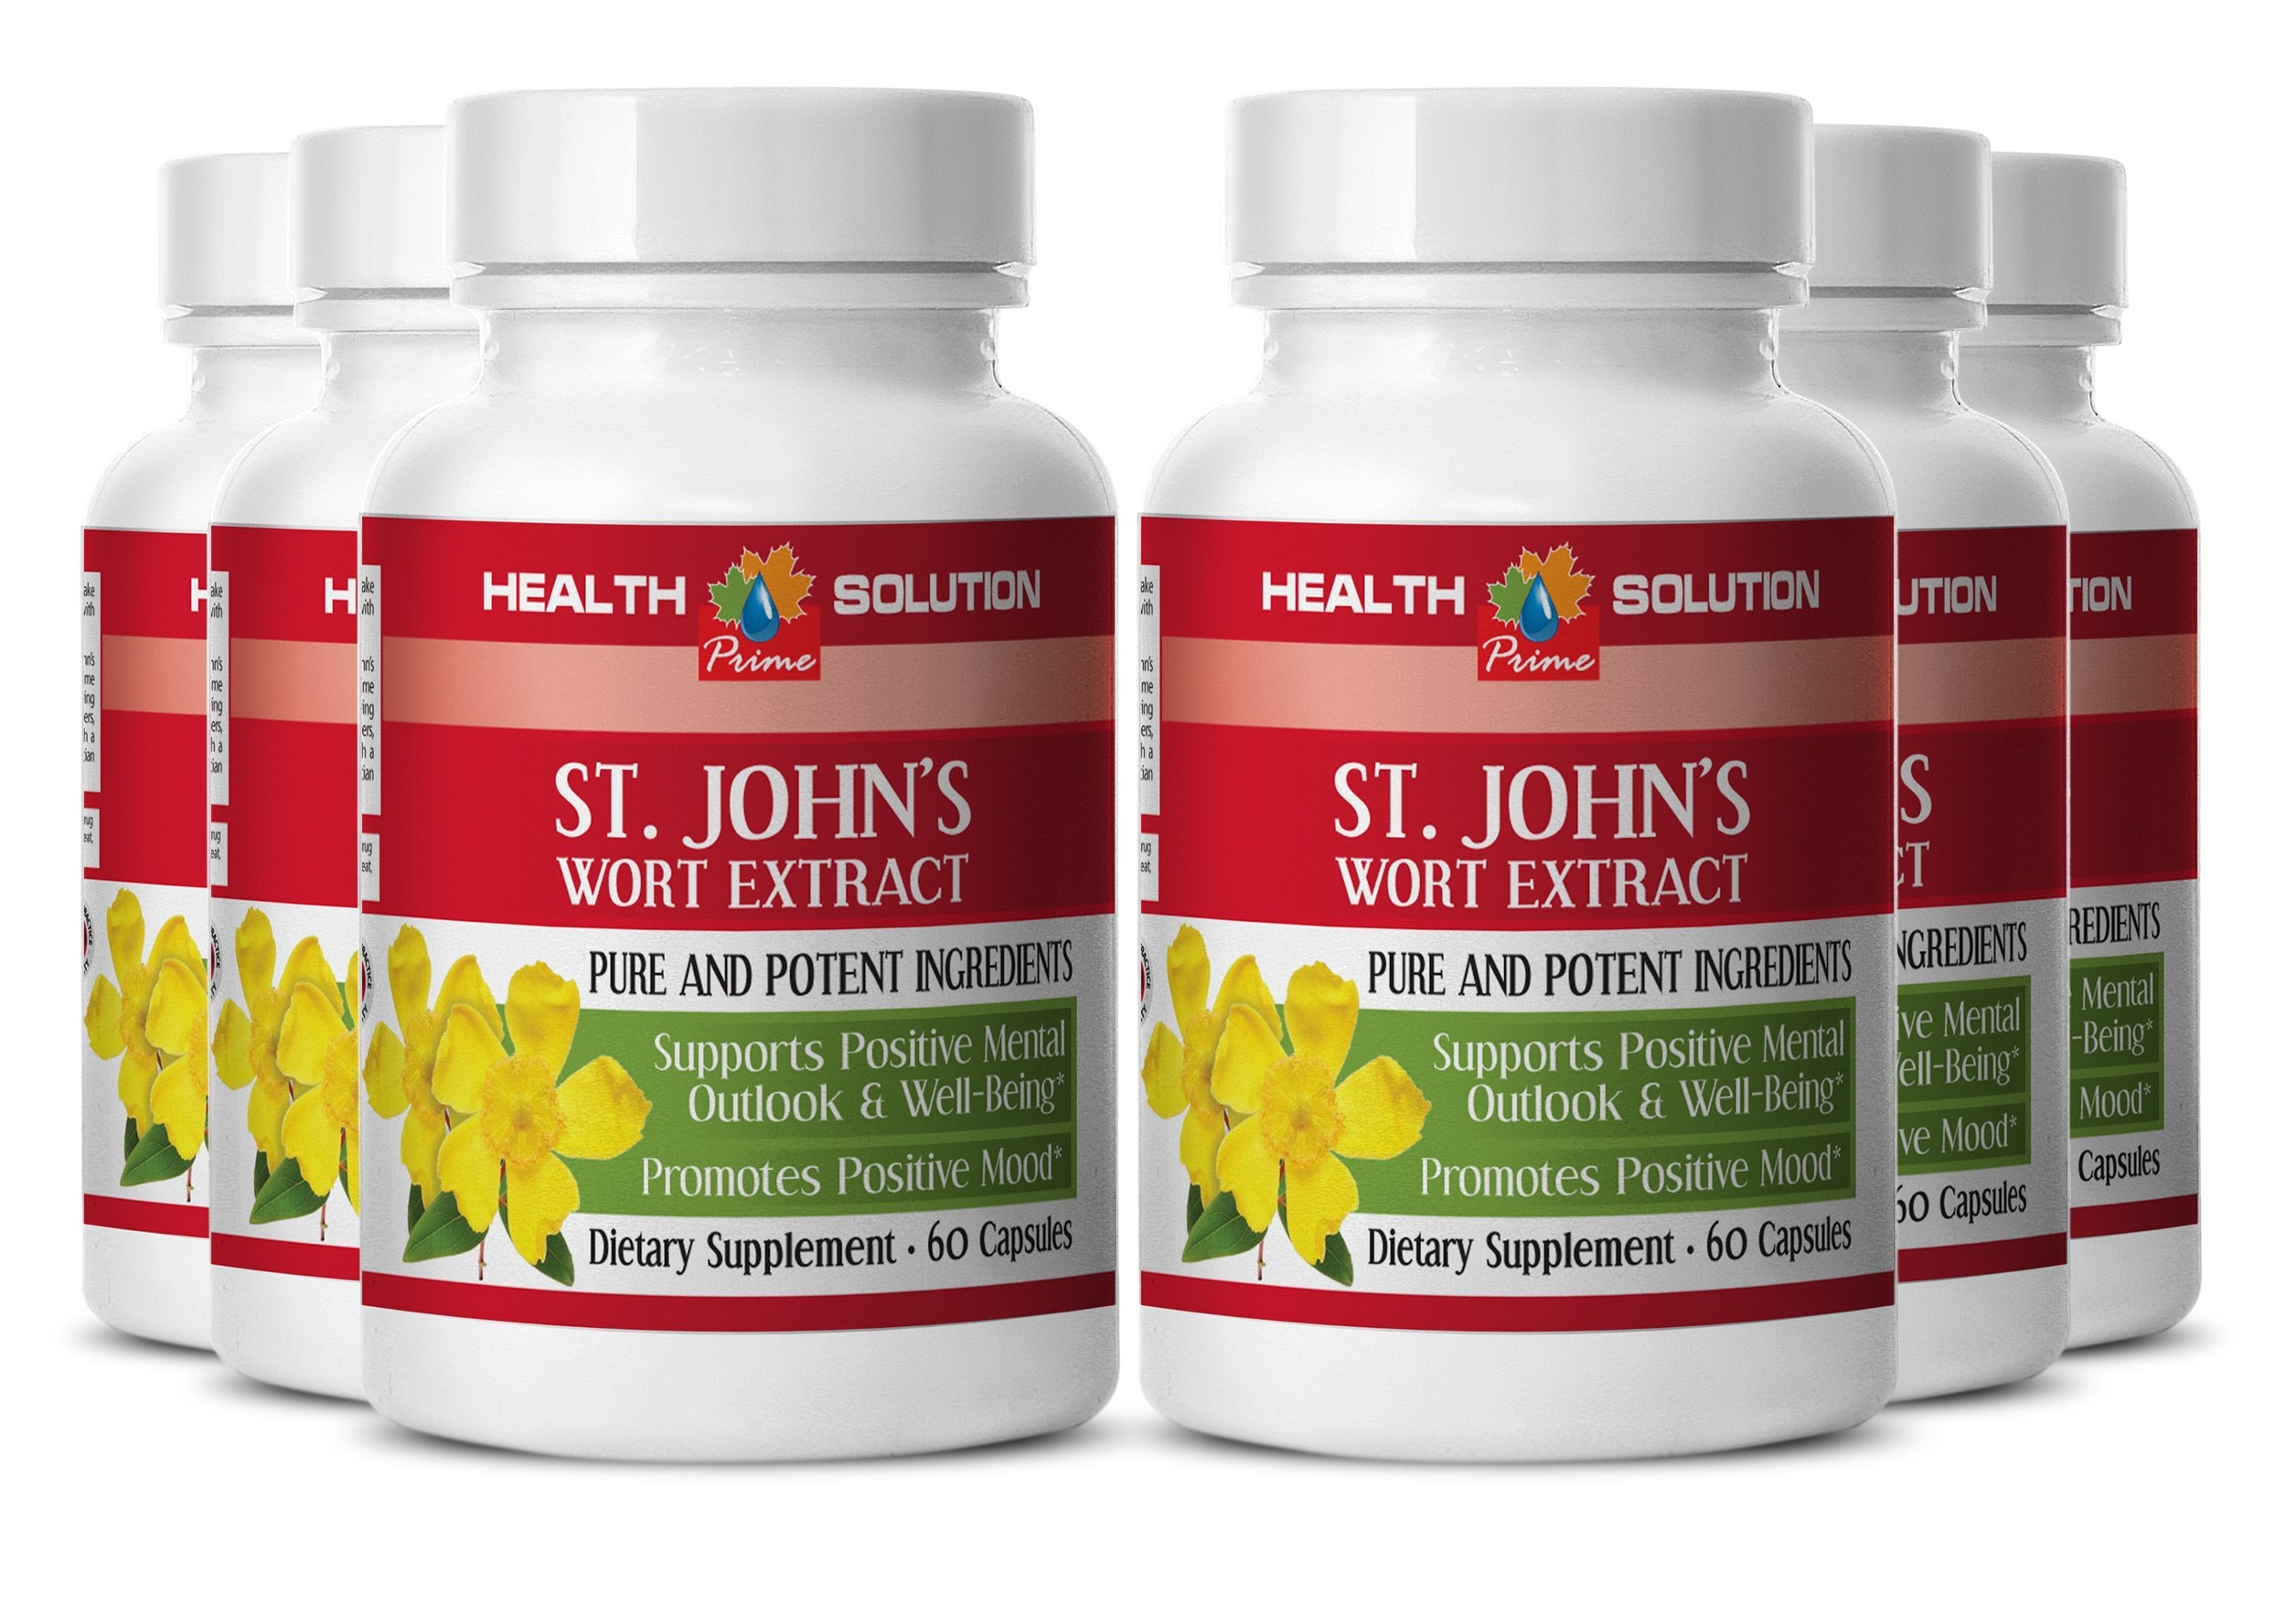 ST JOHN'S WART HERB EXTRACT With Siberian Eleutherococcus and Gingkgo Biloba - Peace of mind - 6 Bottles 360 Capsules